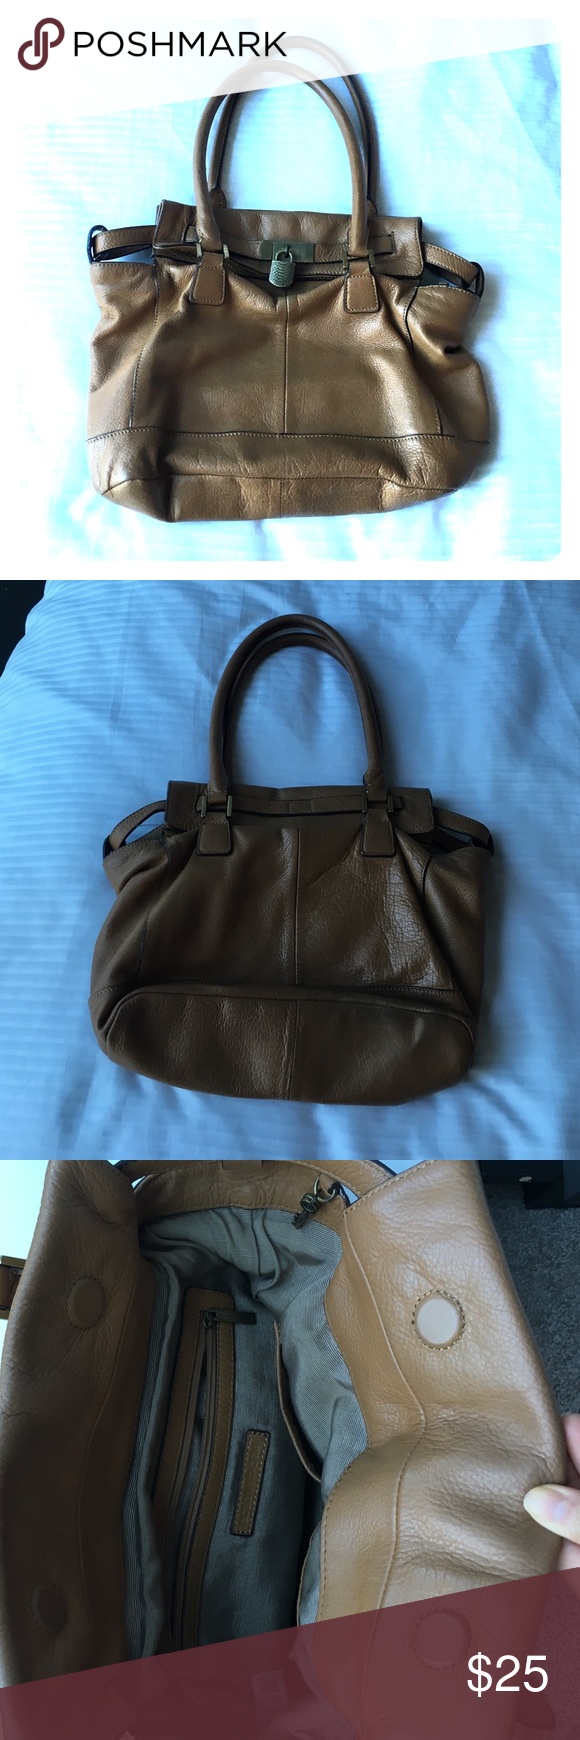 Tan, medium sized BCBG Maxazria handbag Used BCBG tan purse. Matches with tons of outfits. Magnets close the bag. Zipper inside. Real leather. Leather a bit worn on the back of the purse (not visible when worn). BCBGMaxAzria Bags Shoulder Bags